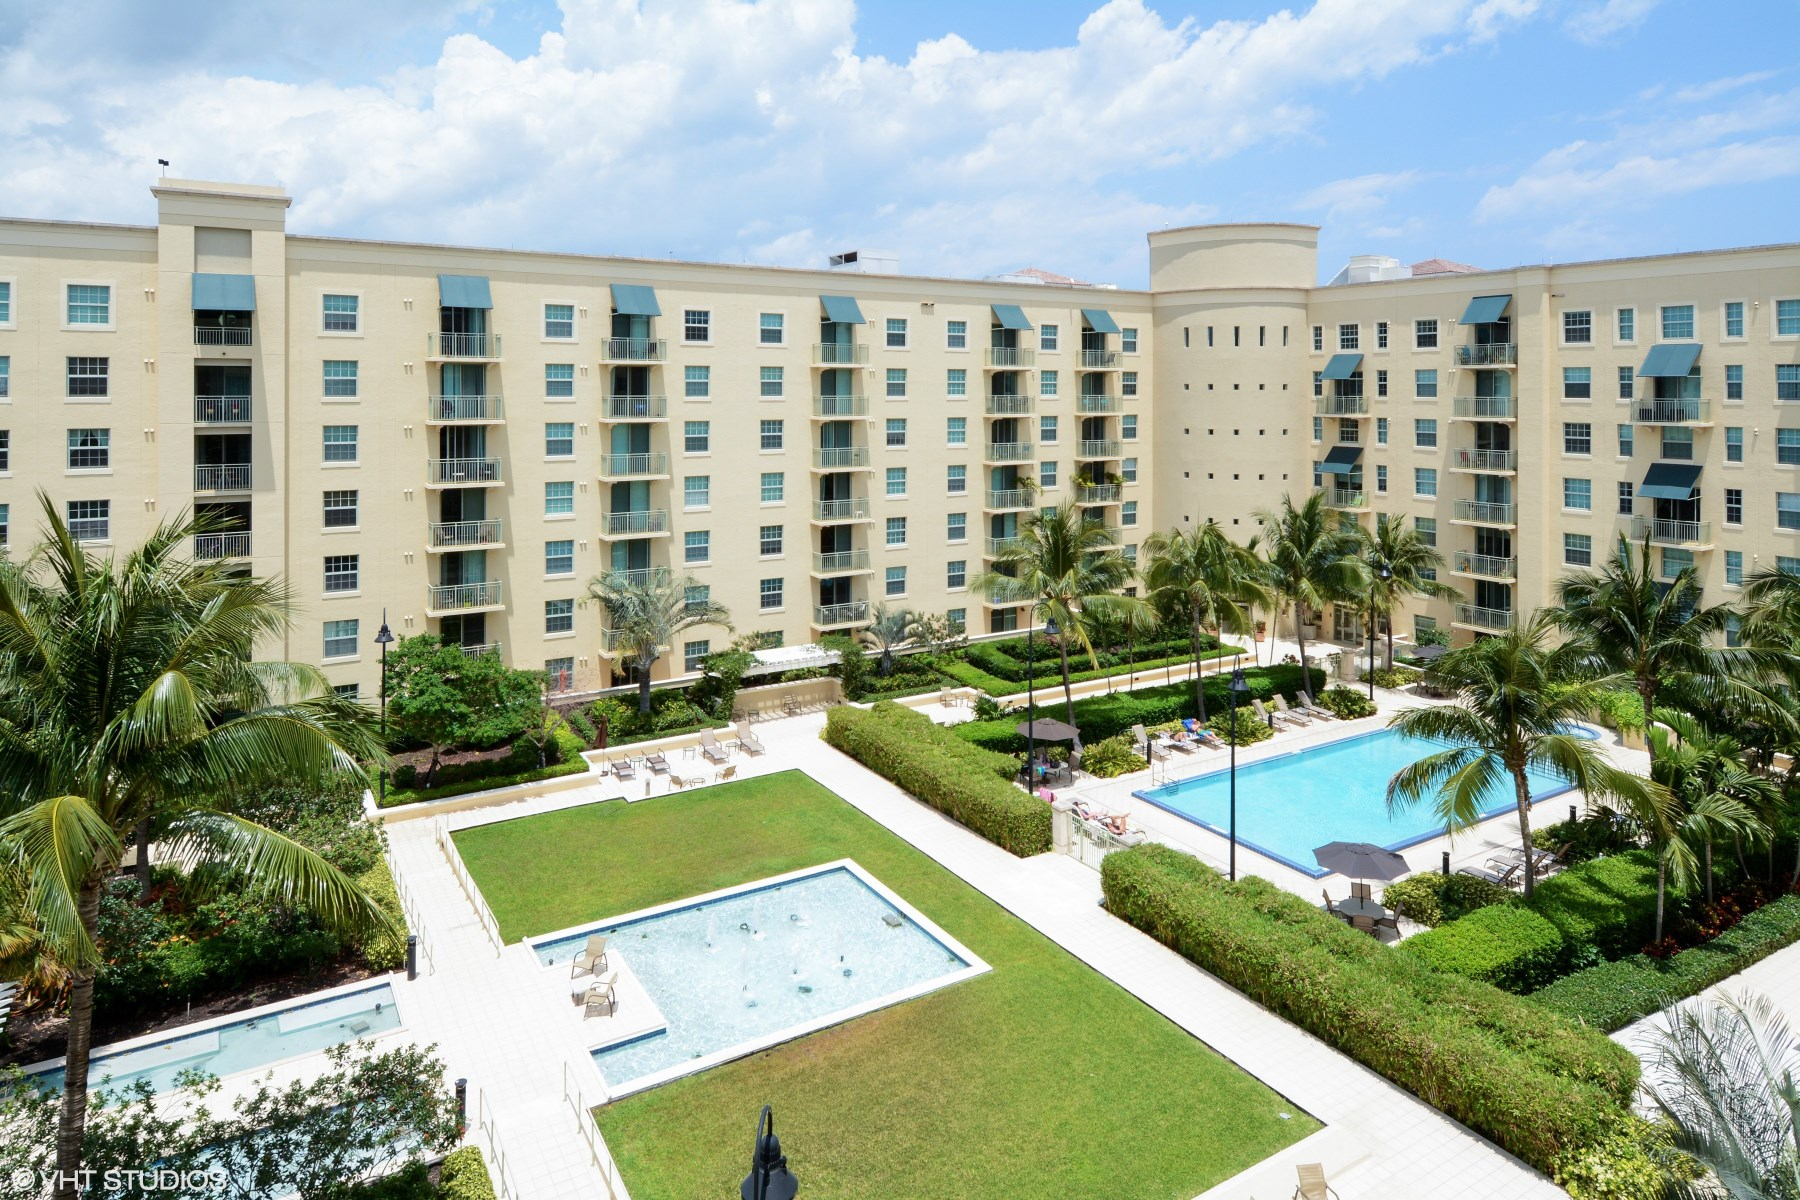 Condominium for Sale at Rare Three Bedroom Condo 610 Clematis St Apt 733 West Palm Beach, Florida, 33401 United States